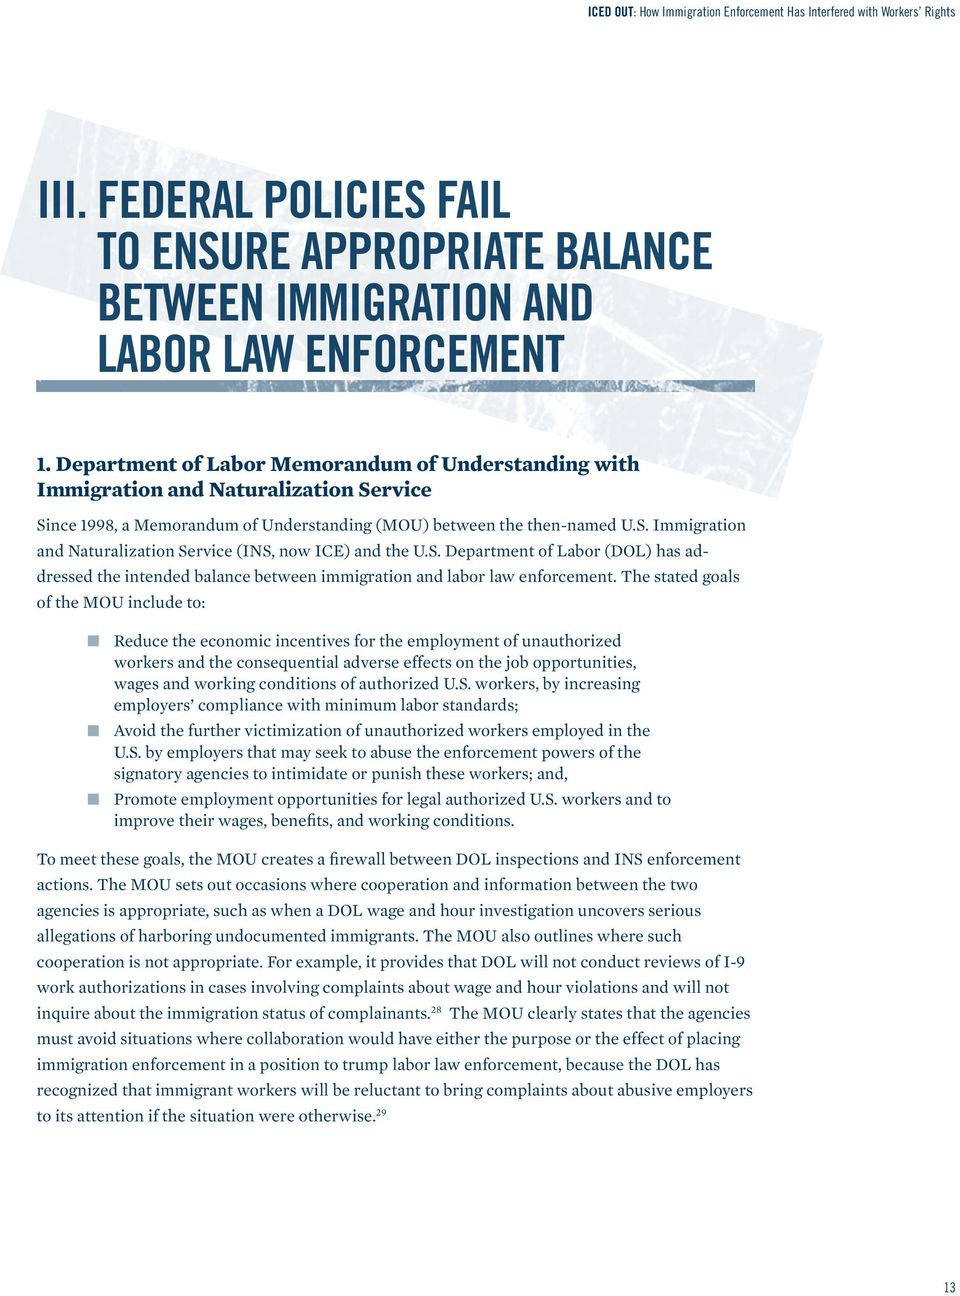 S. Department of Labor (DOL) has addressed the intended balance between immigration and labor law enforcement.